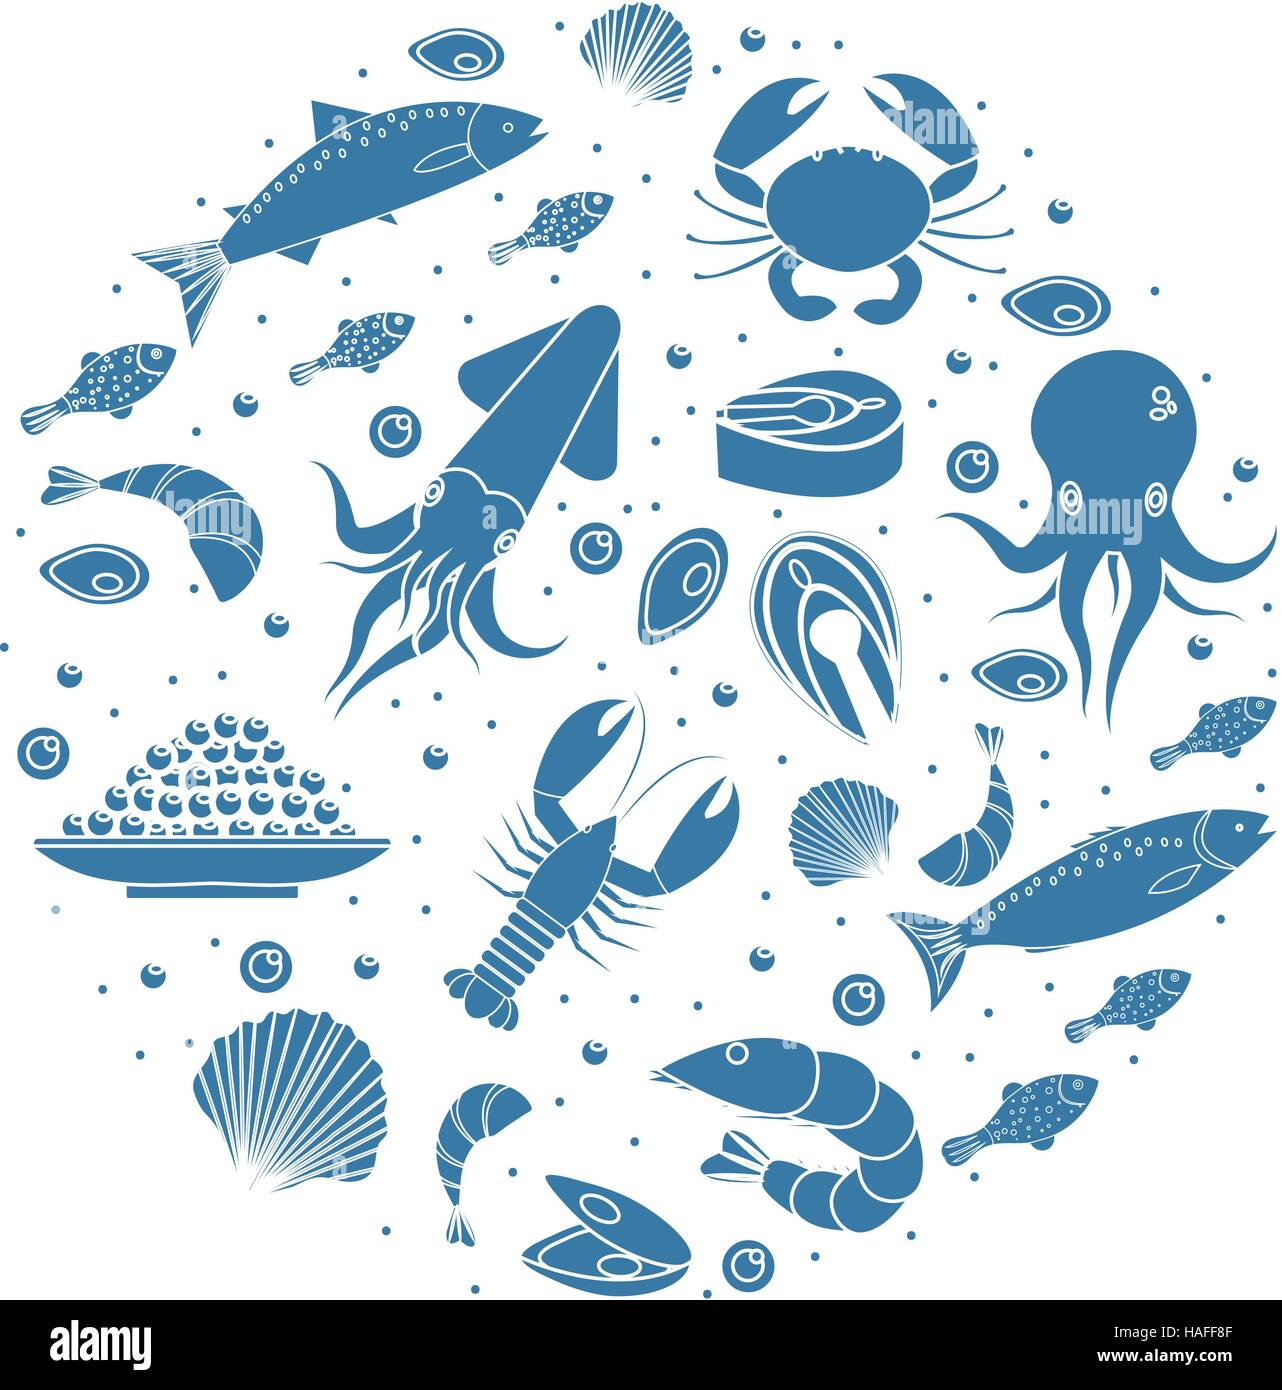 Seafood icons set in round shape,silhouette. Sea food collection isolated on white background. Fish products, marine Stock Vector